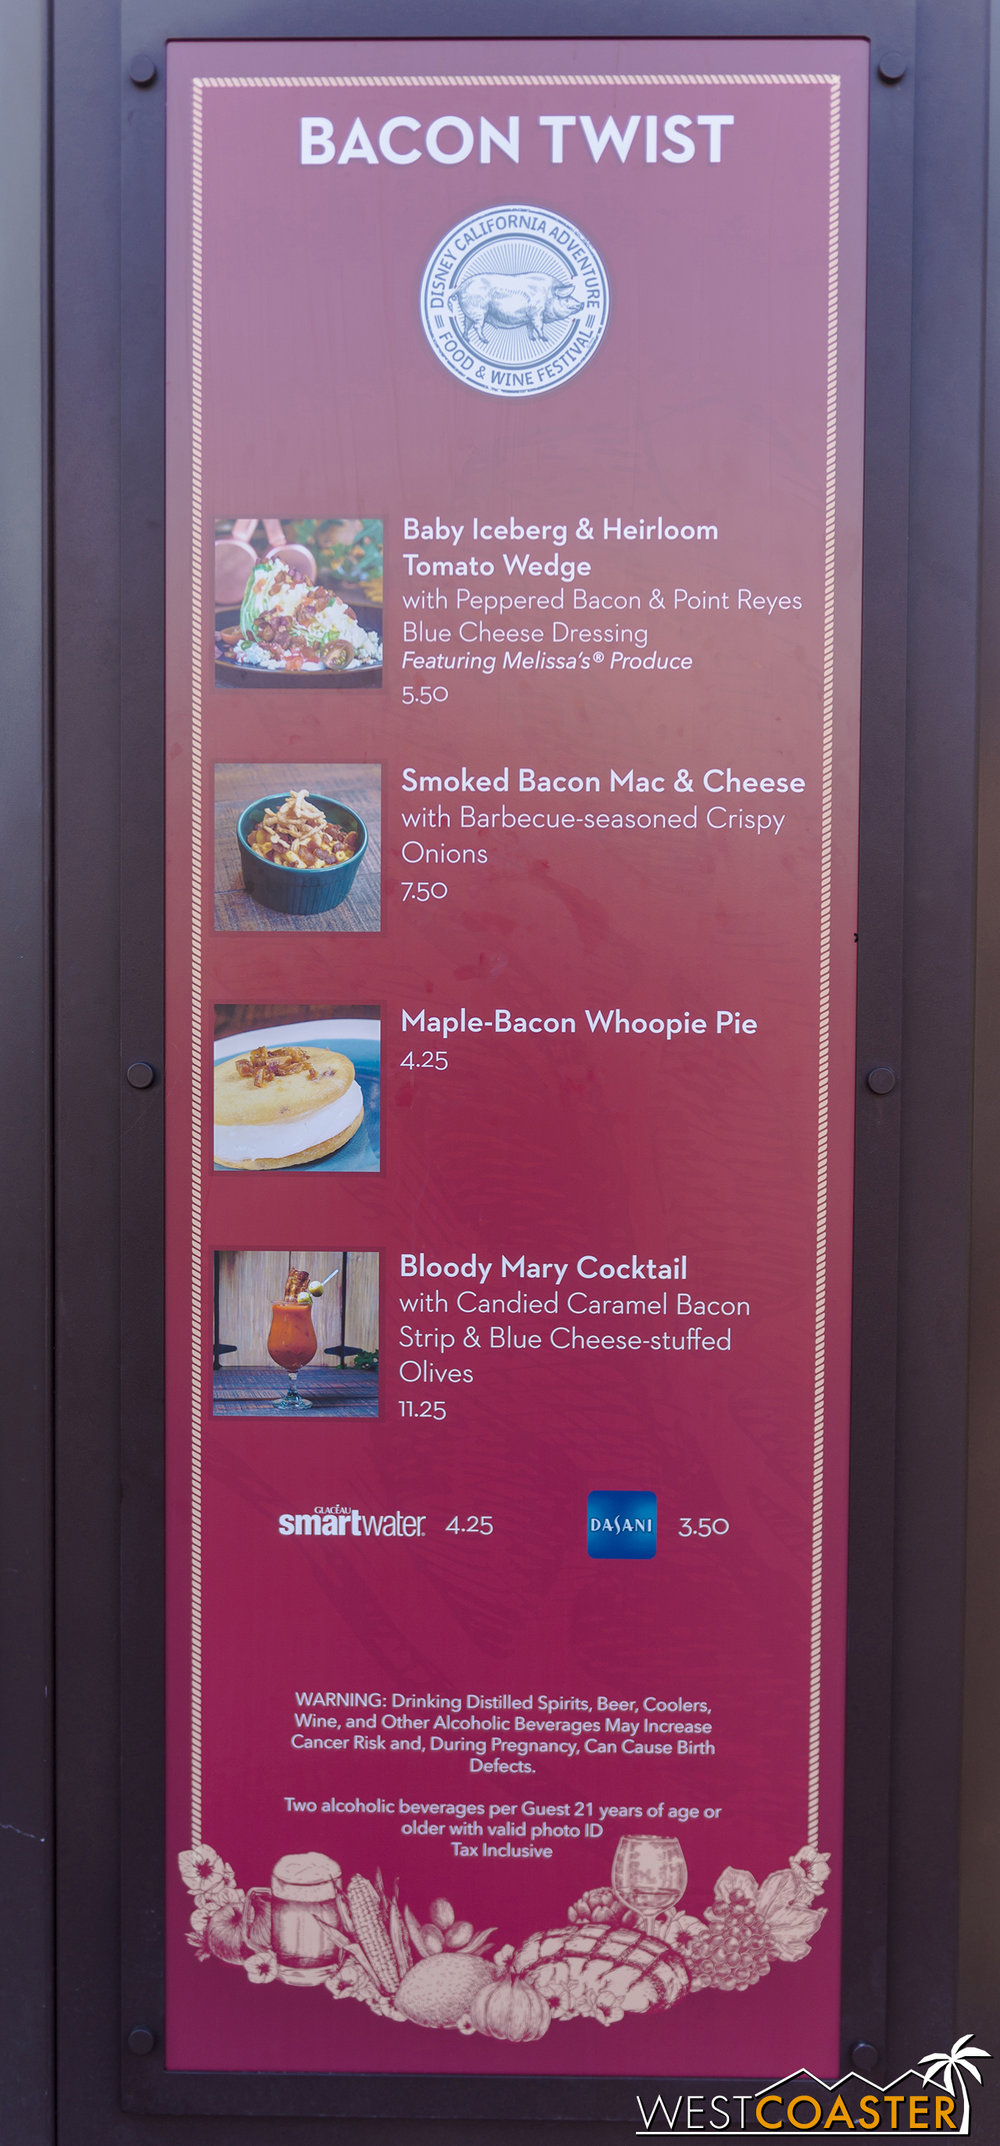 DLR-17_0314-G-Menu-07-BaconTwist.jpg